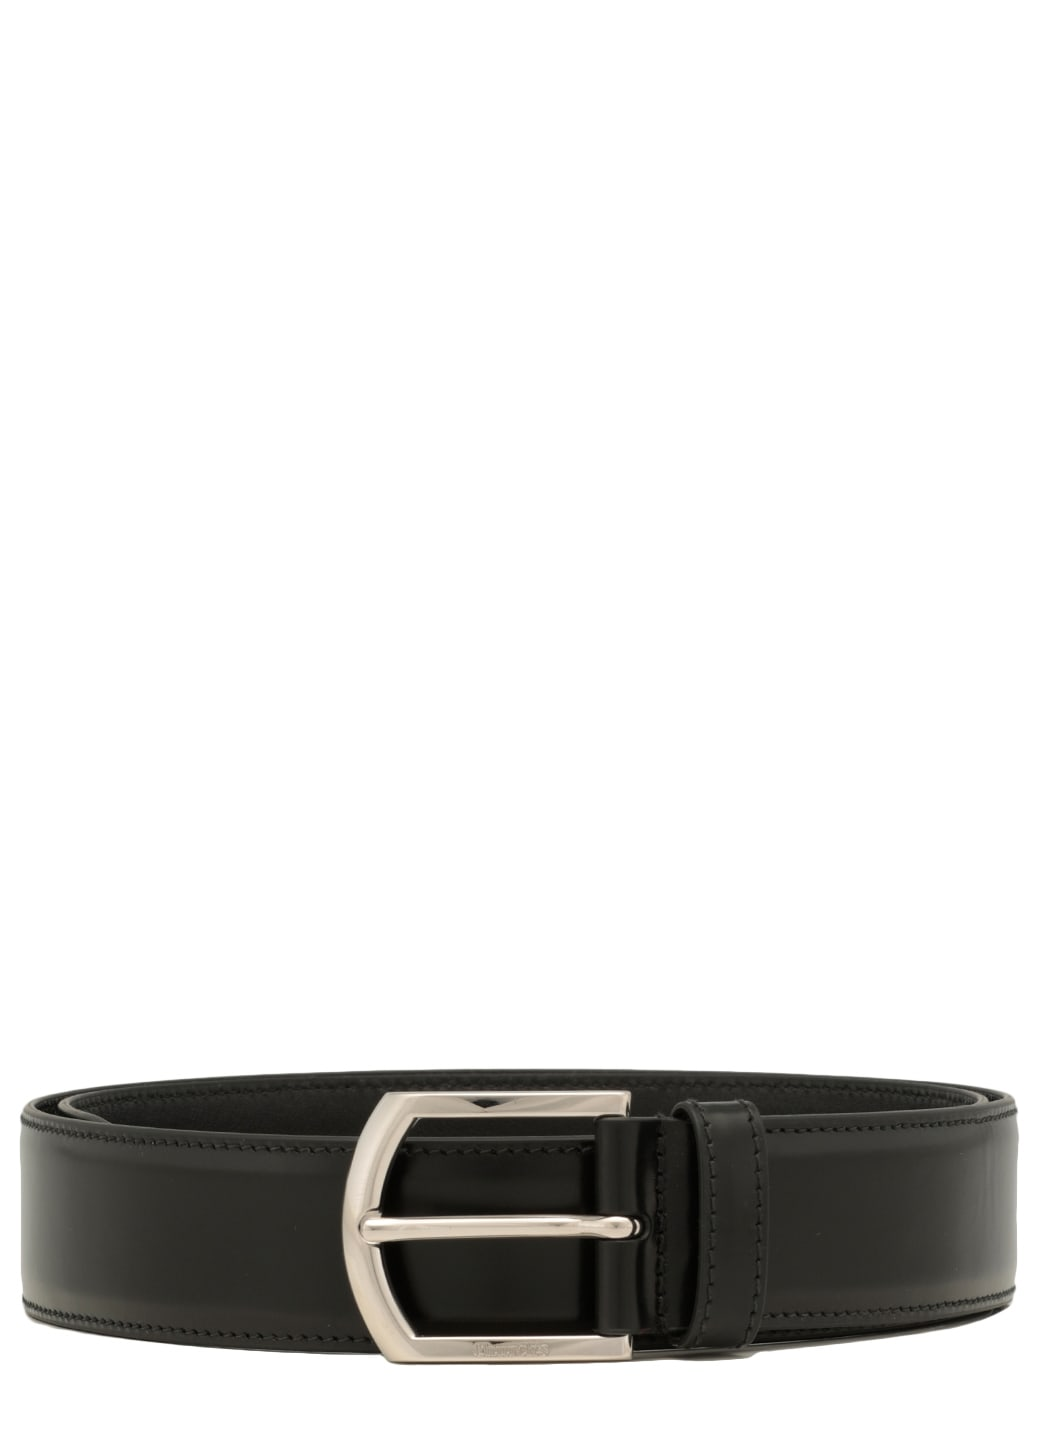 Church's Belts REVERSIBLE LEAHER BELT